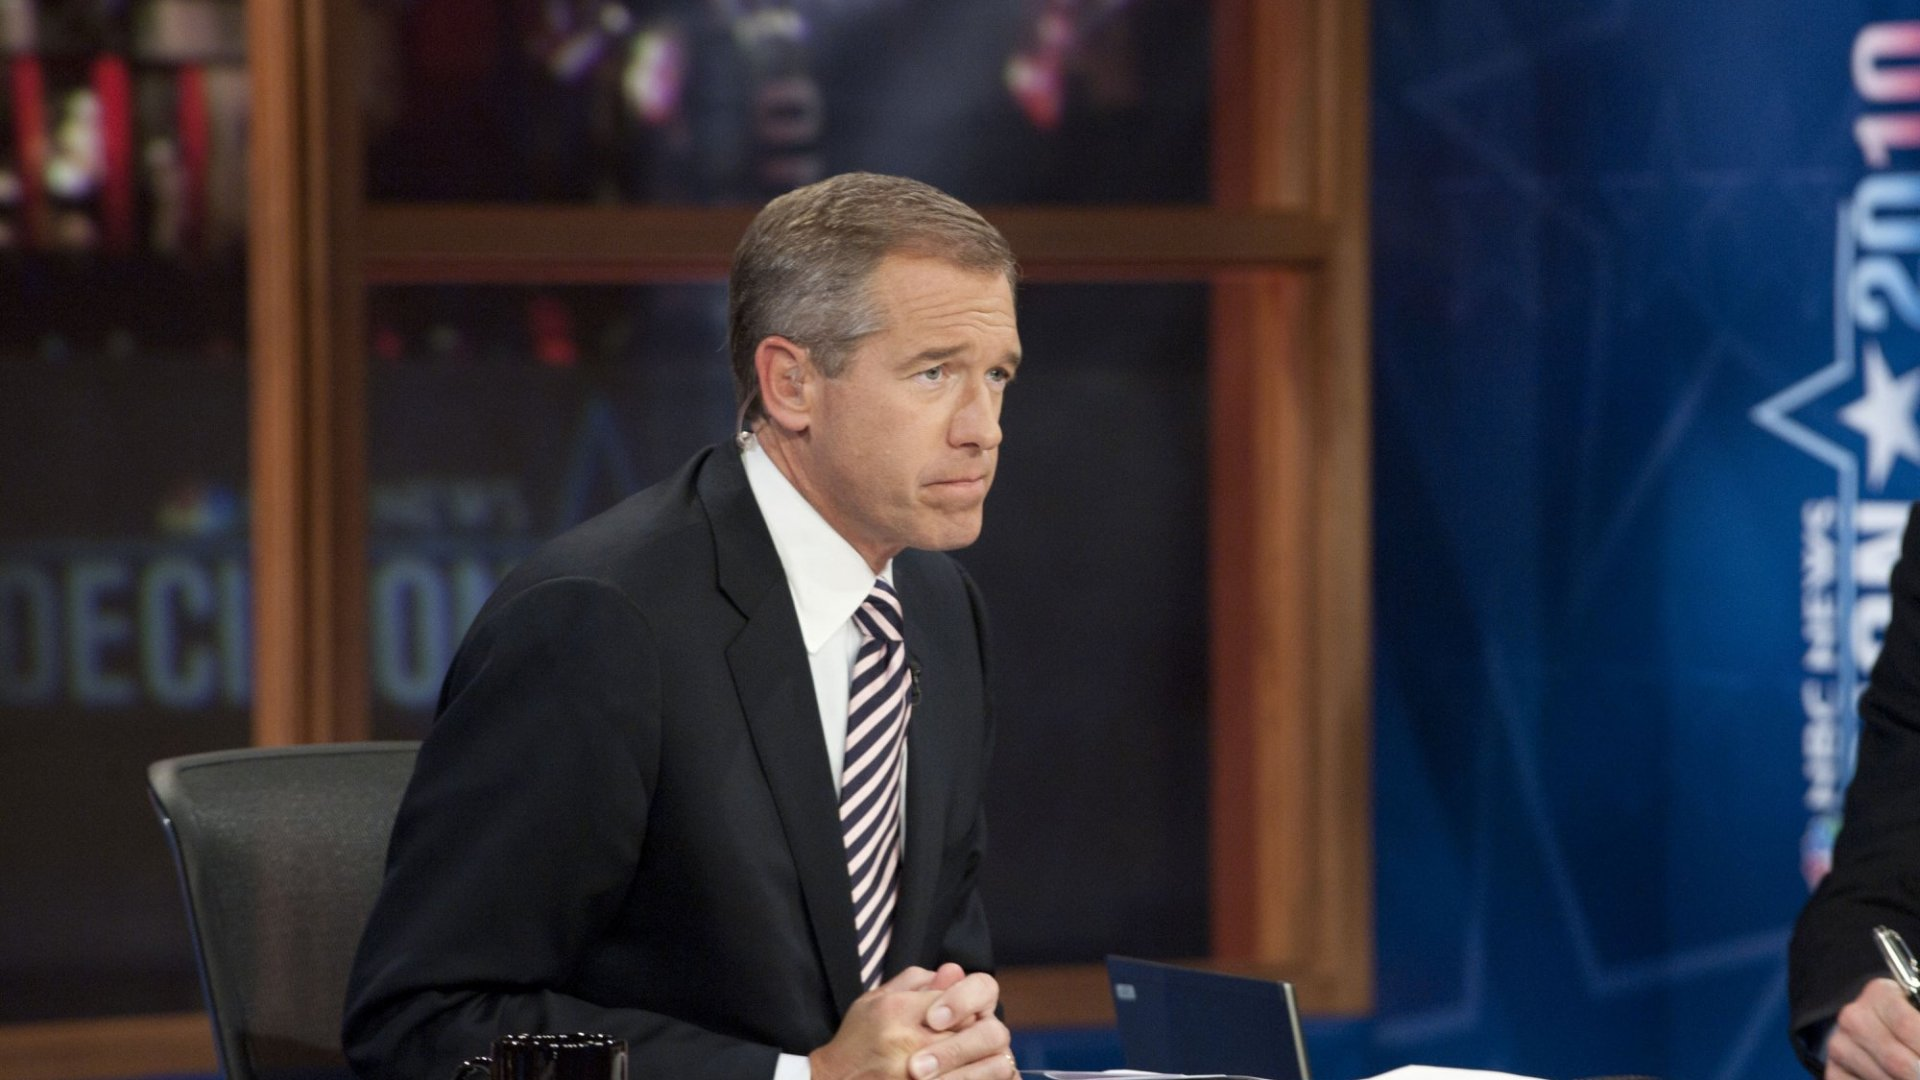 10 Lessons on Repairing Your Reputation From the Brian Williams Mess